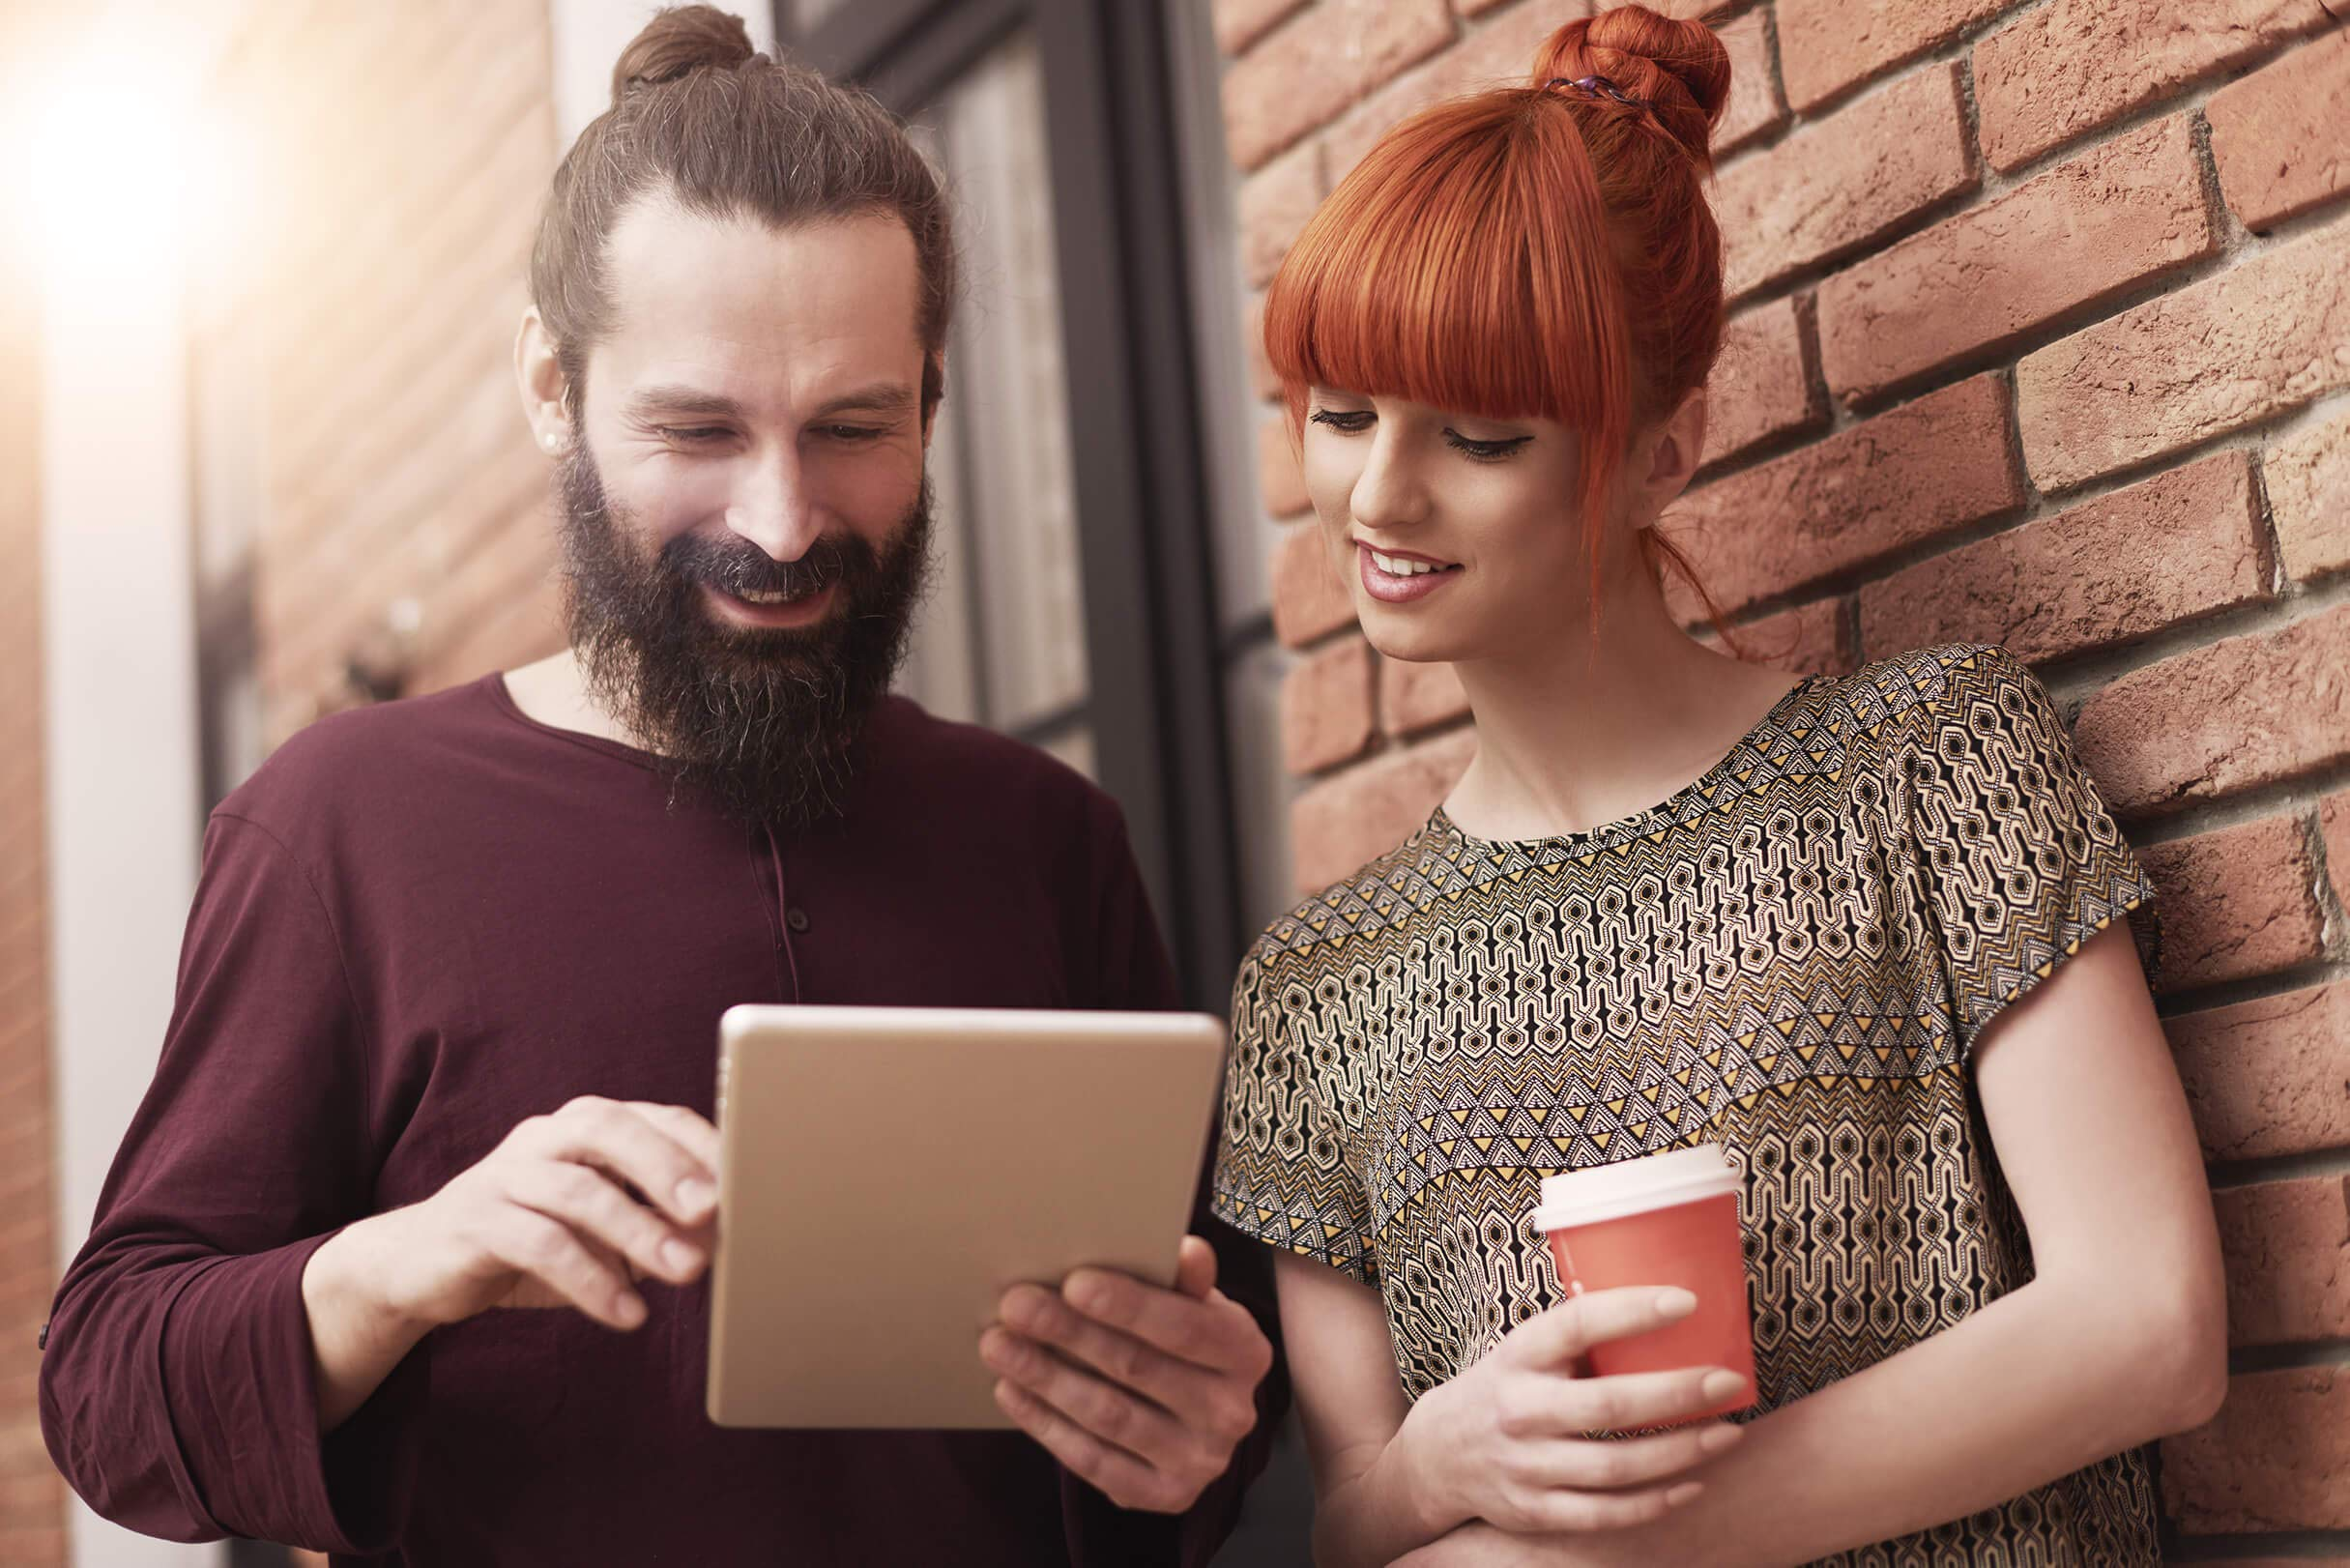 Man and woman looking at a tablet.